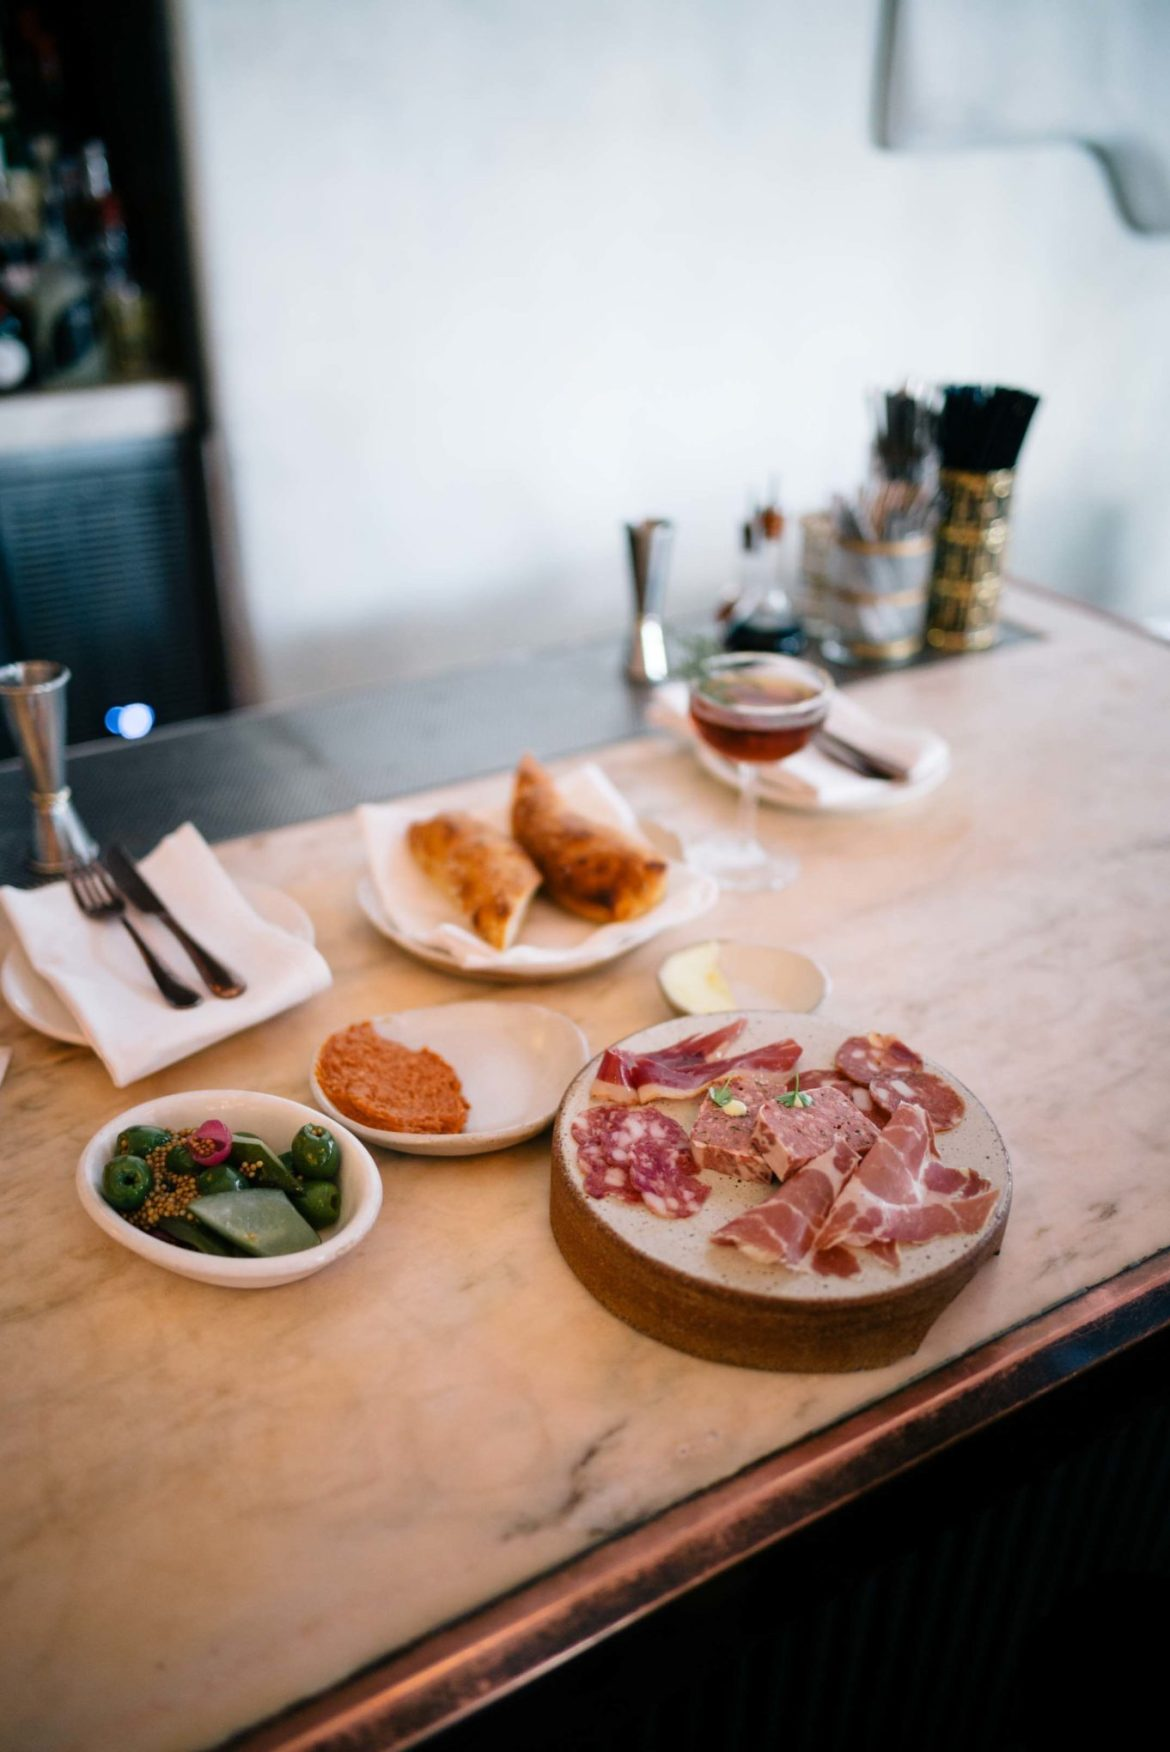 For the best cocktails in Hollywood visit Chef Curtis Stone's Gwen and try the homemade charcuterie from the butcher shop.